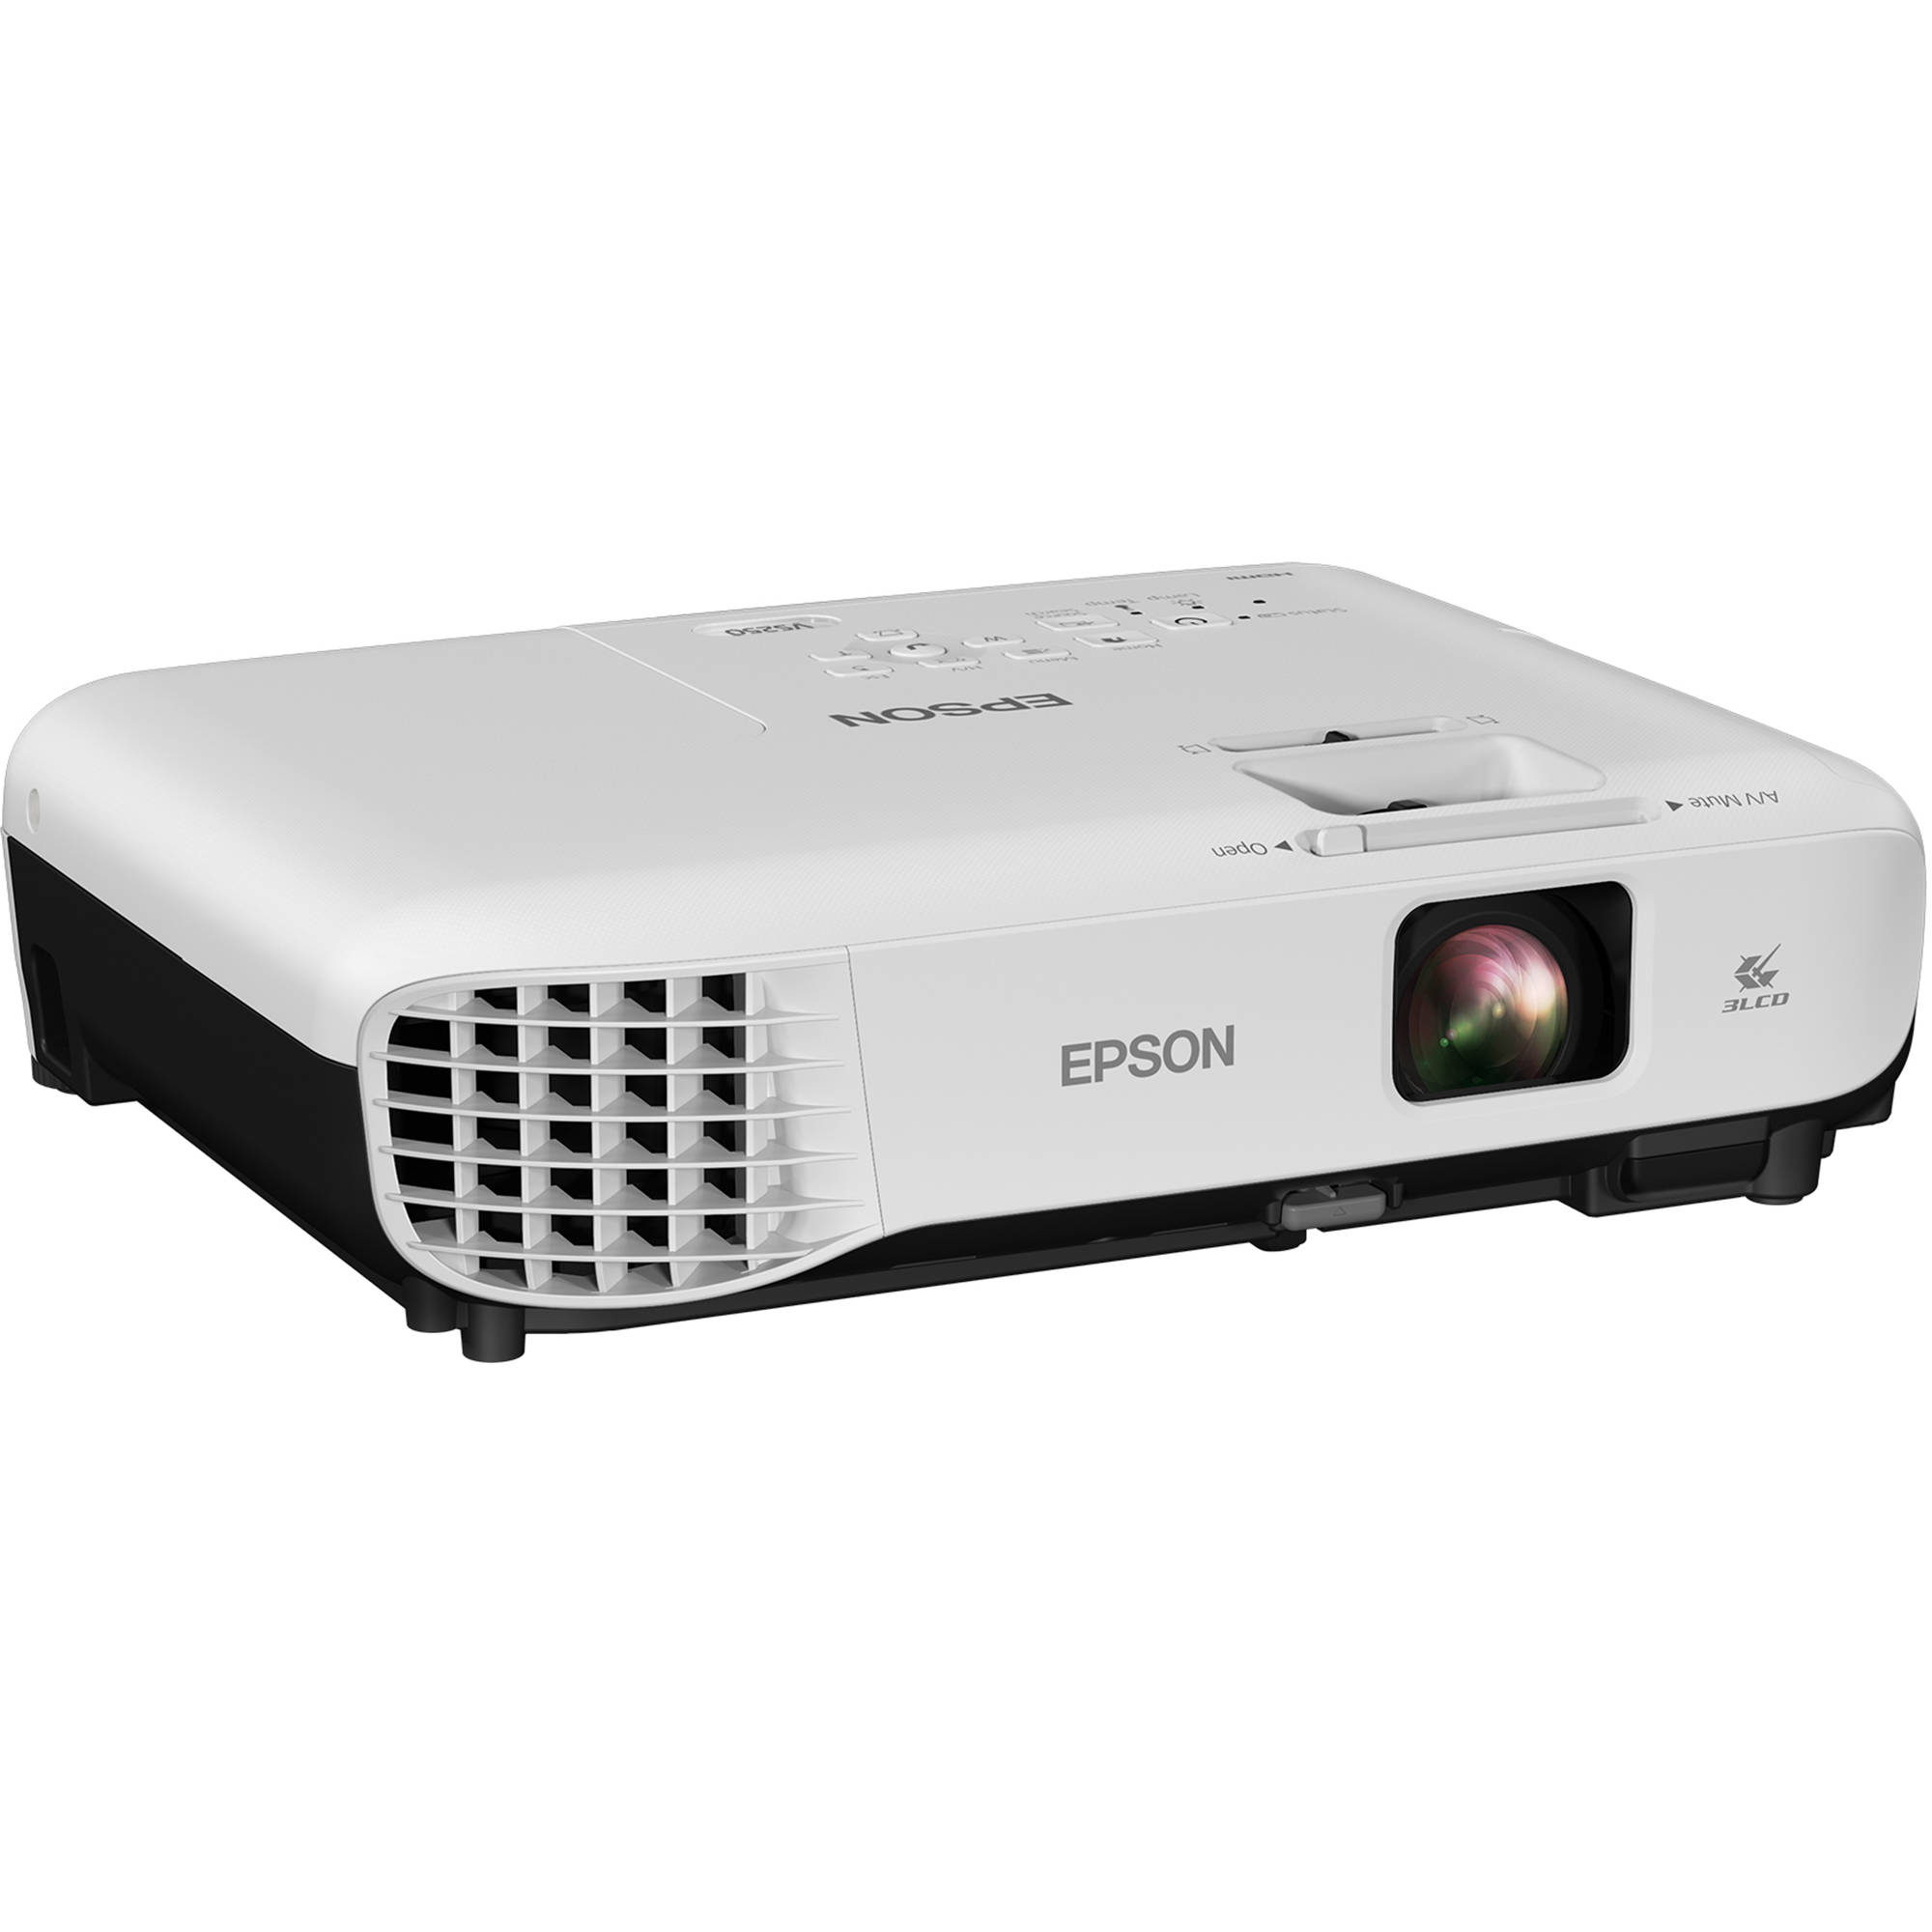 Epson vs250 3200 lumen svga 3lcd projector v11h838220 b h for Small projector with high lumens